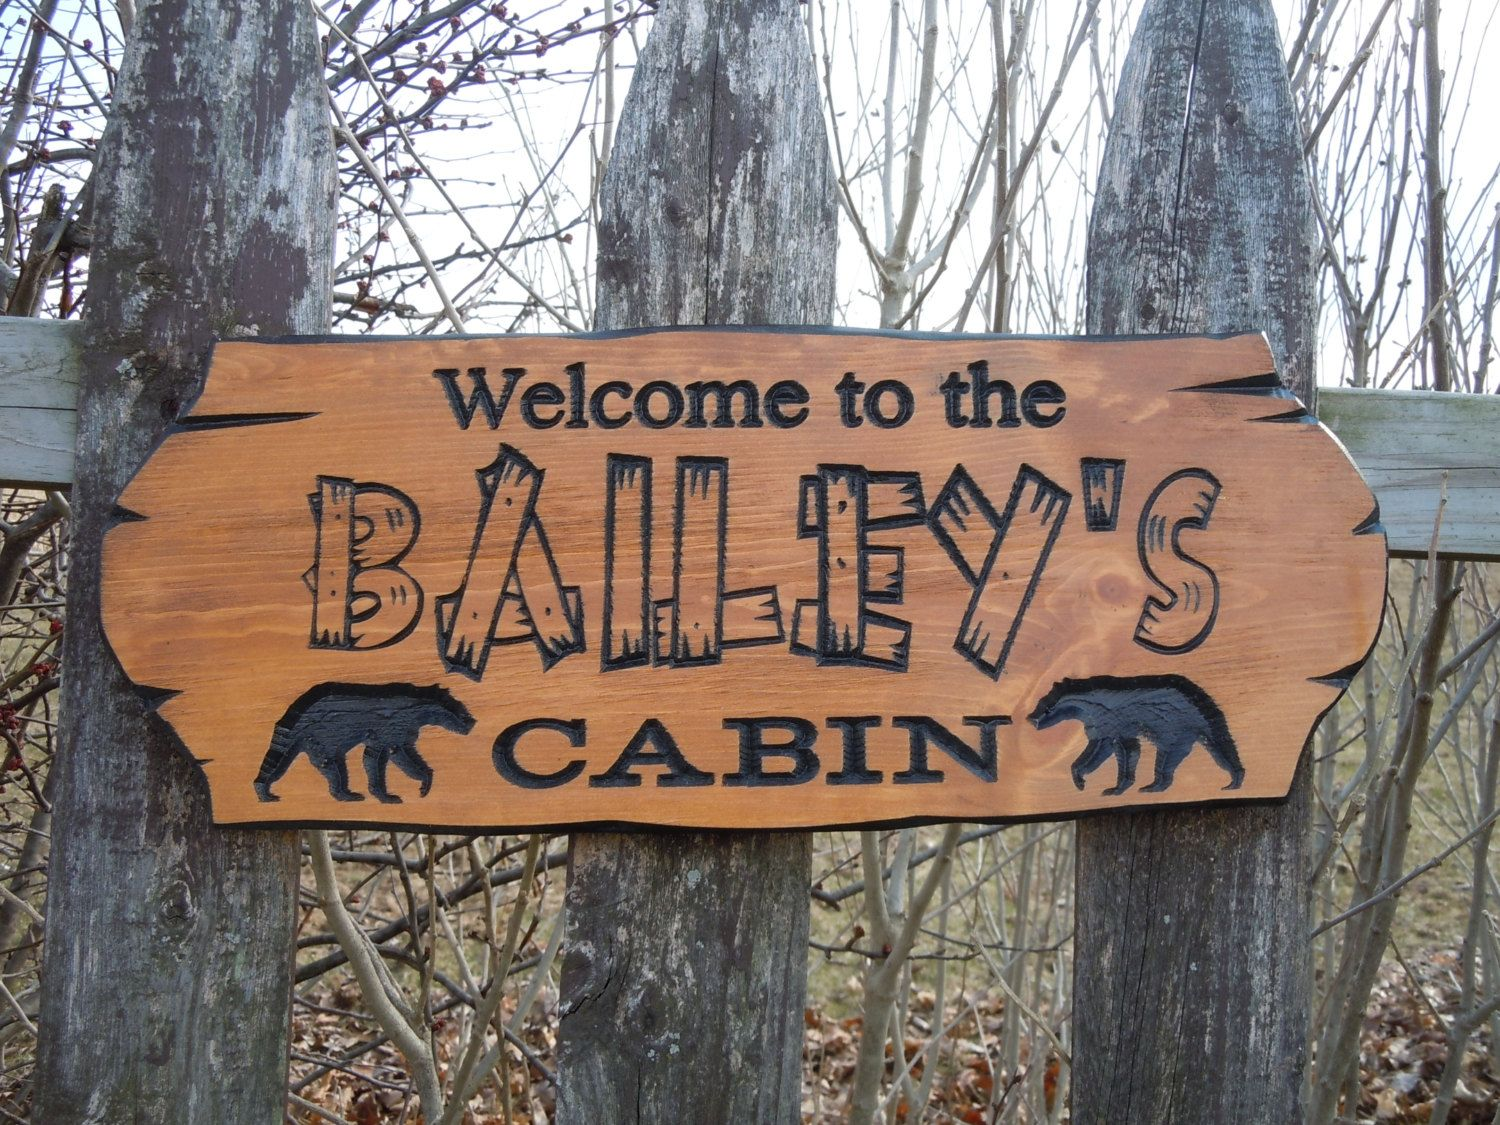 Cabin sign last name personalized wooden carved rustic hunting camp outdoor custom engraved plaque bear image housewarming gift pine 303 by tkwoodcrafts on